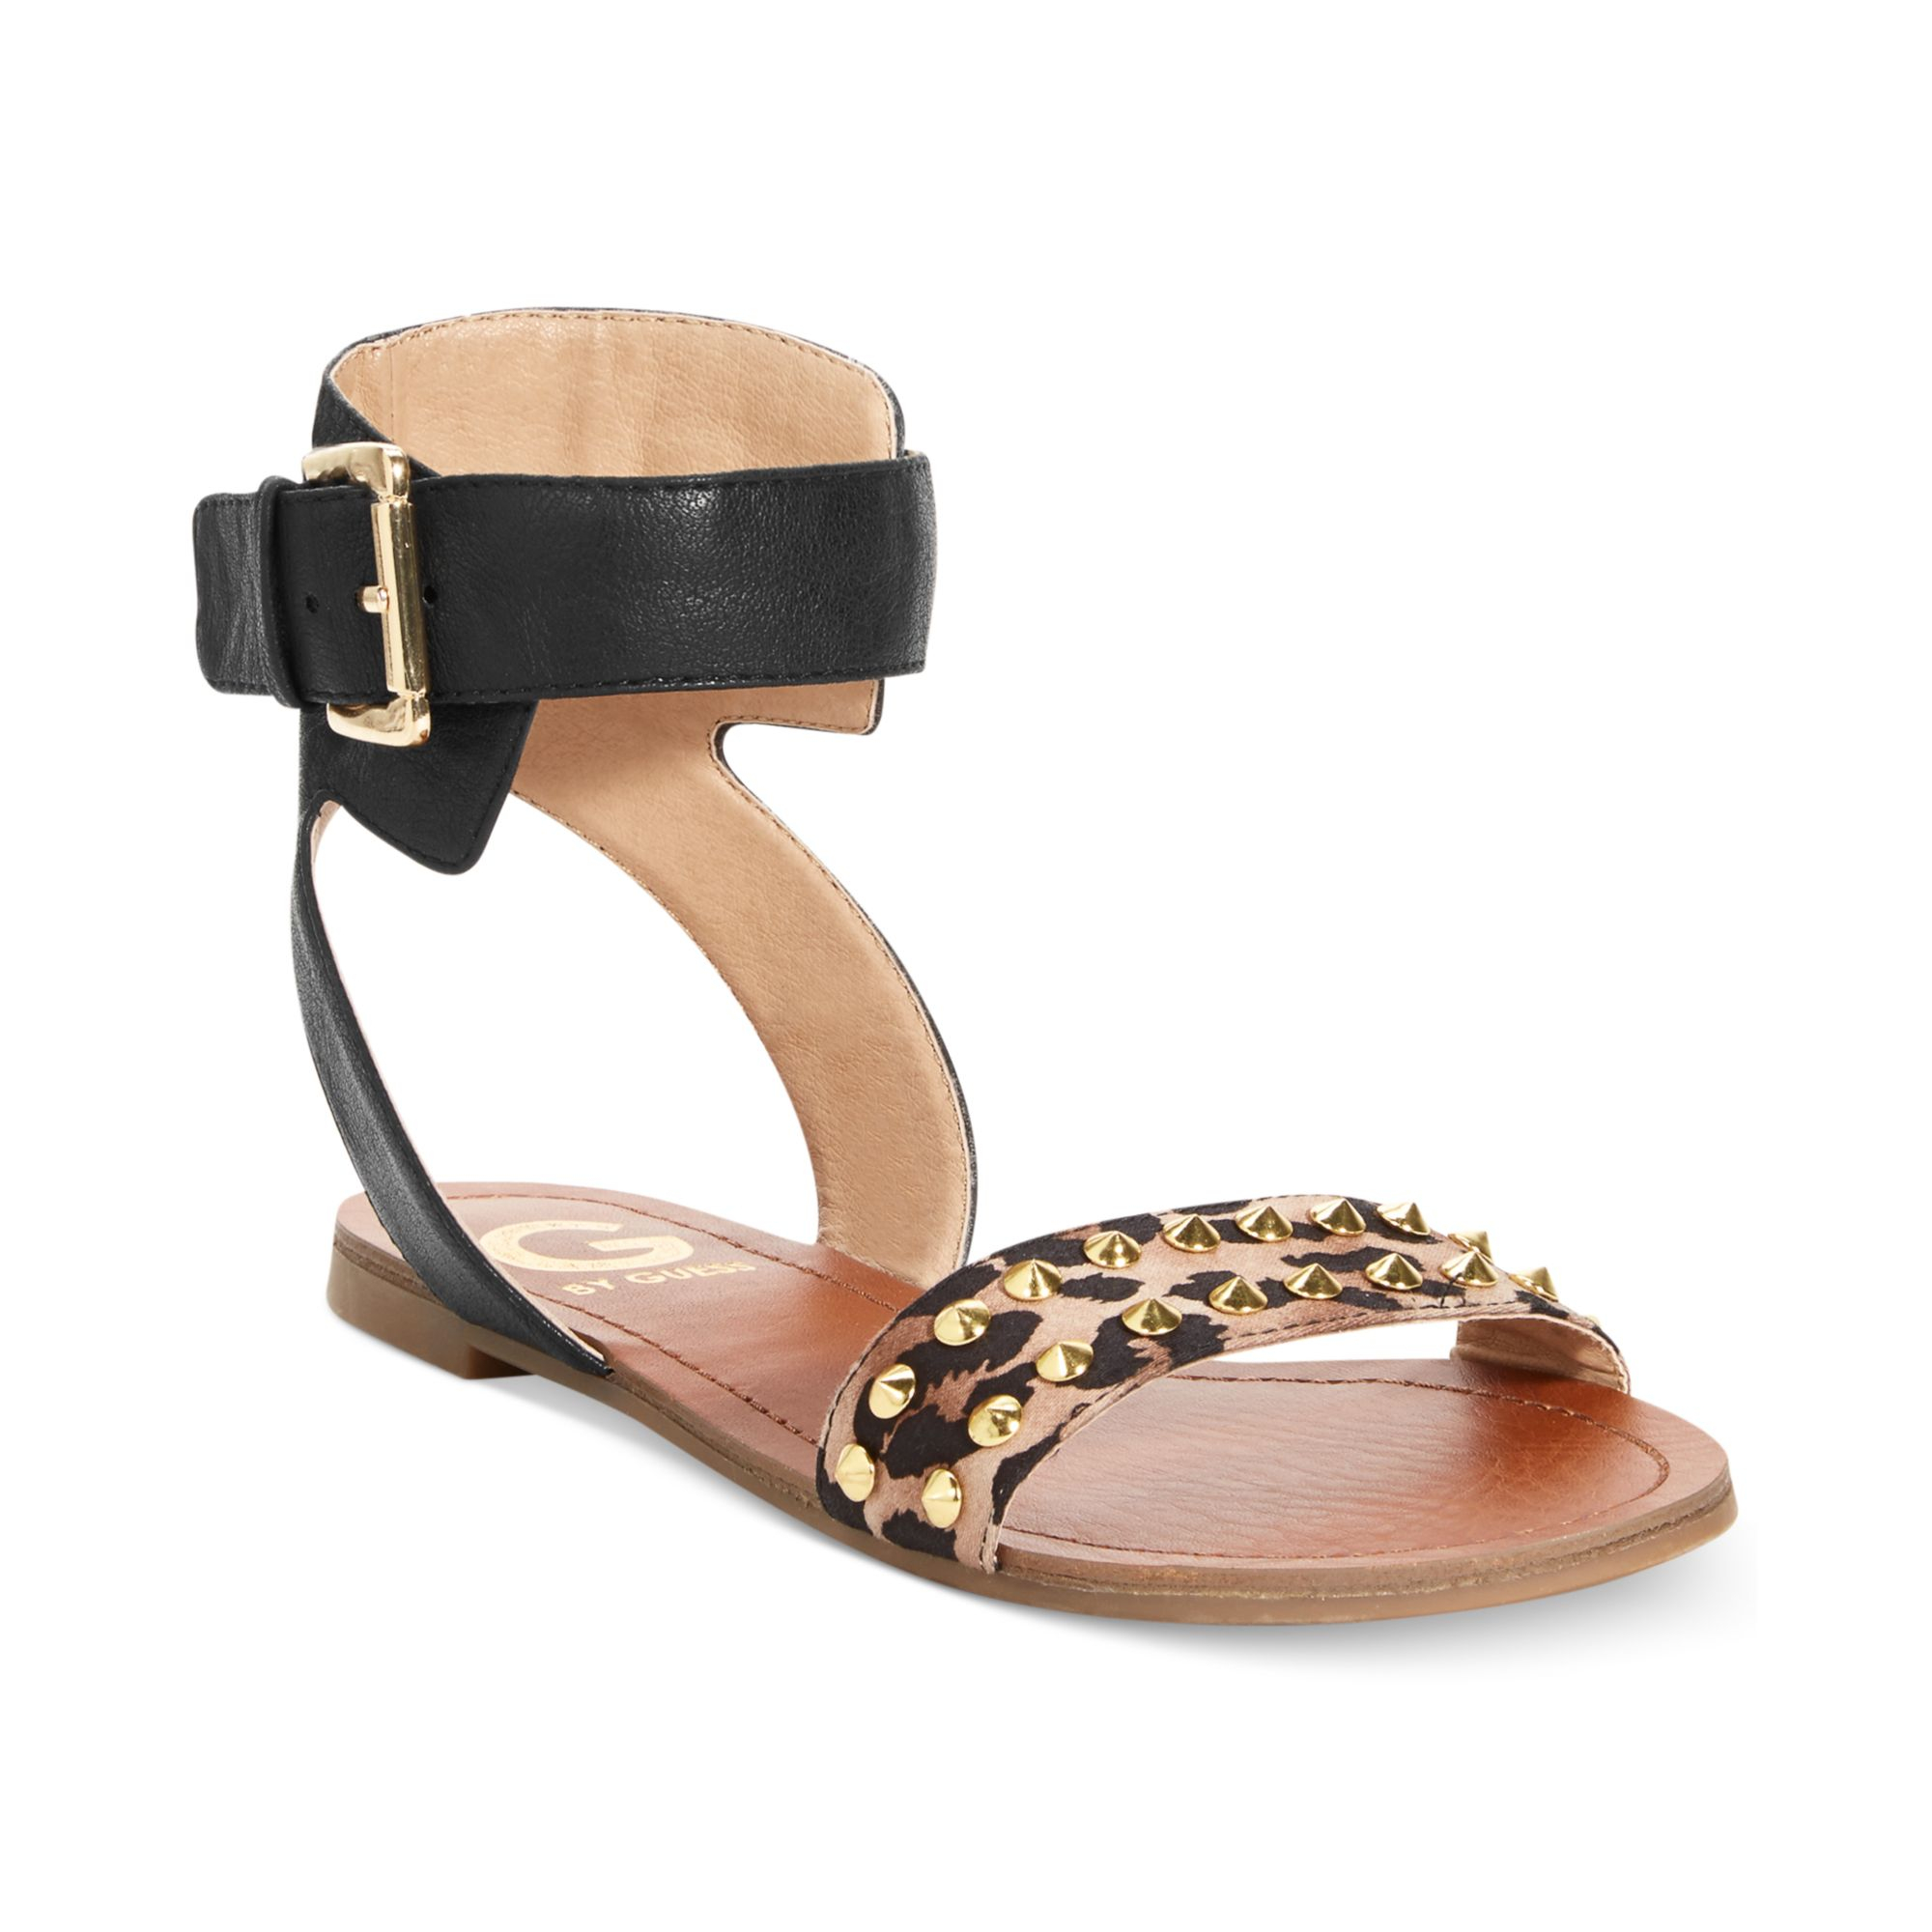 2127cc931 Lyst - G by Guess Womens Keeper Flat Sandals